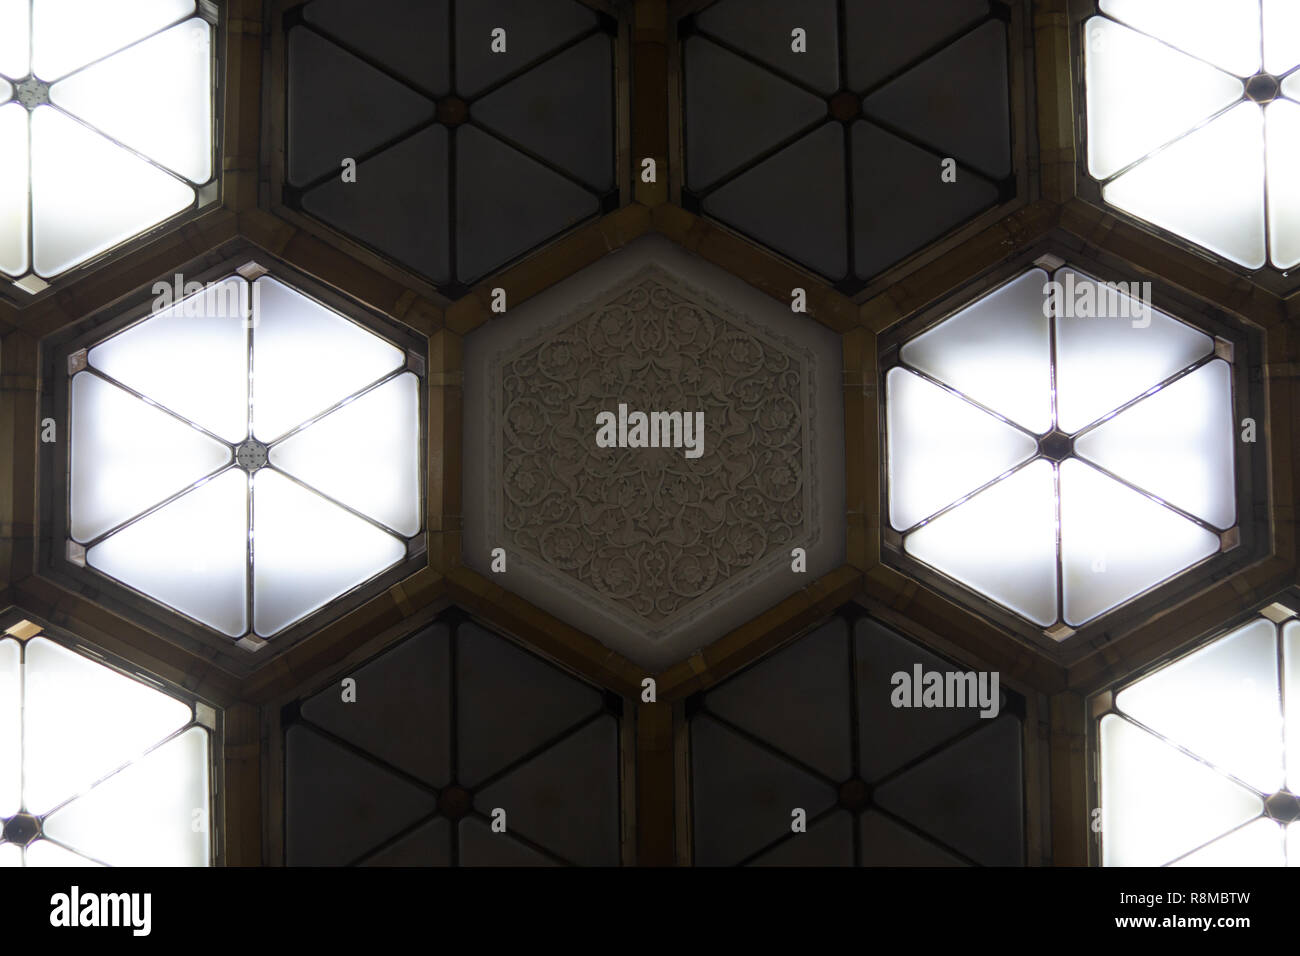 Light fixtures on the ceiling of one of the stations in Tashkent Metro - Uzbekistan - Stock Image